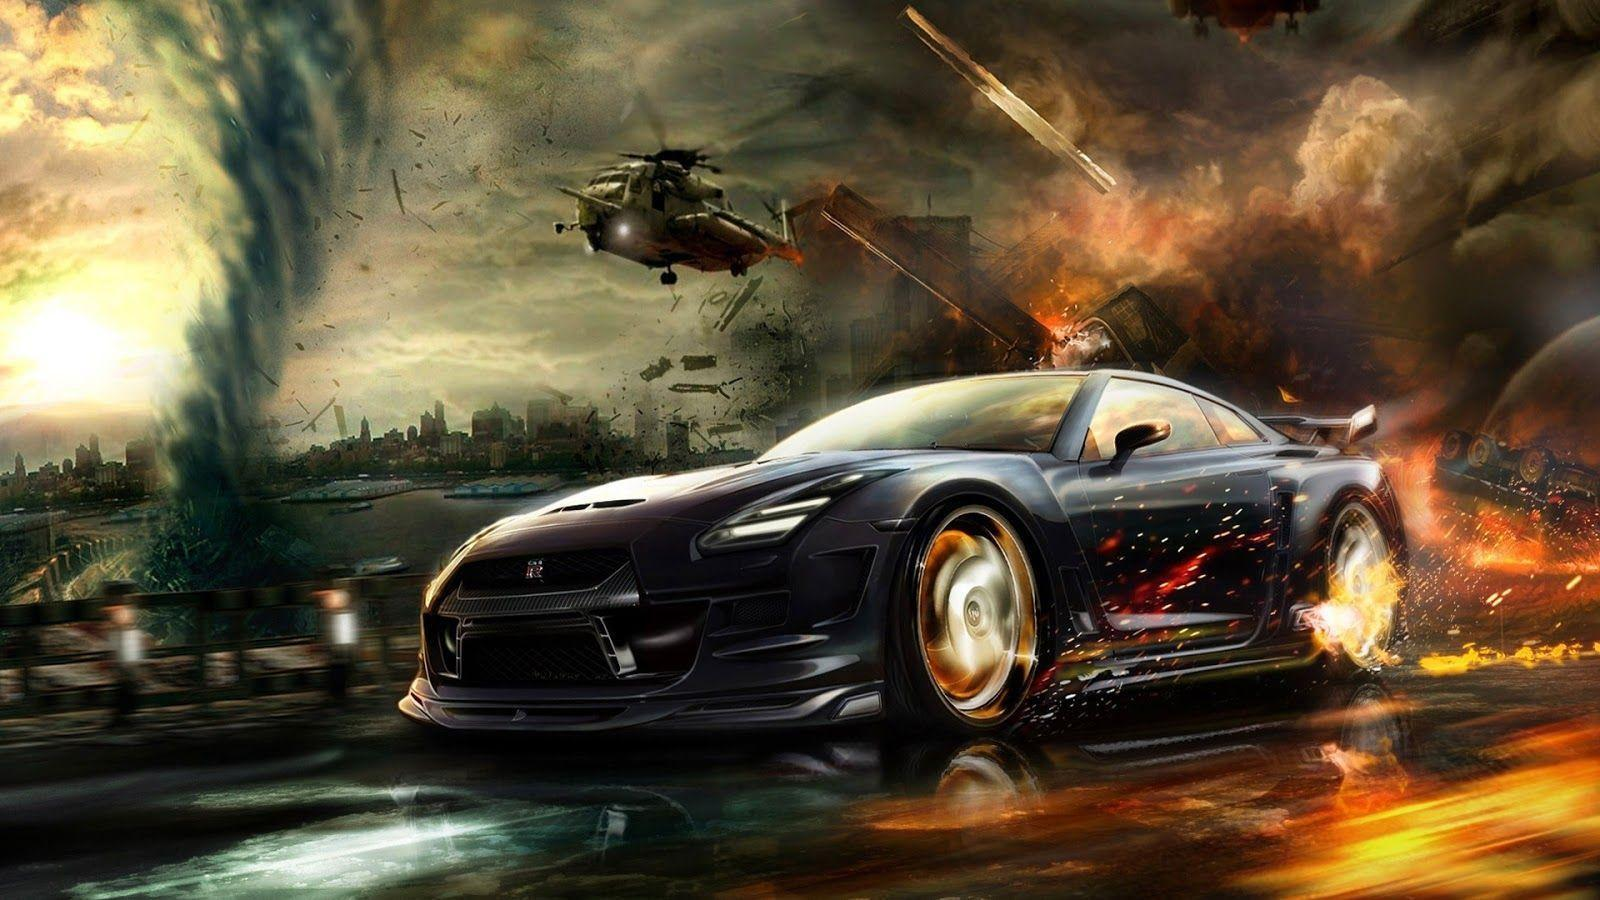 Street Racing Cars Wallpapers - Wallpaper Cave